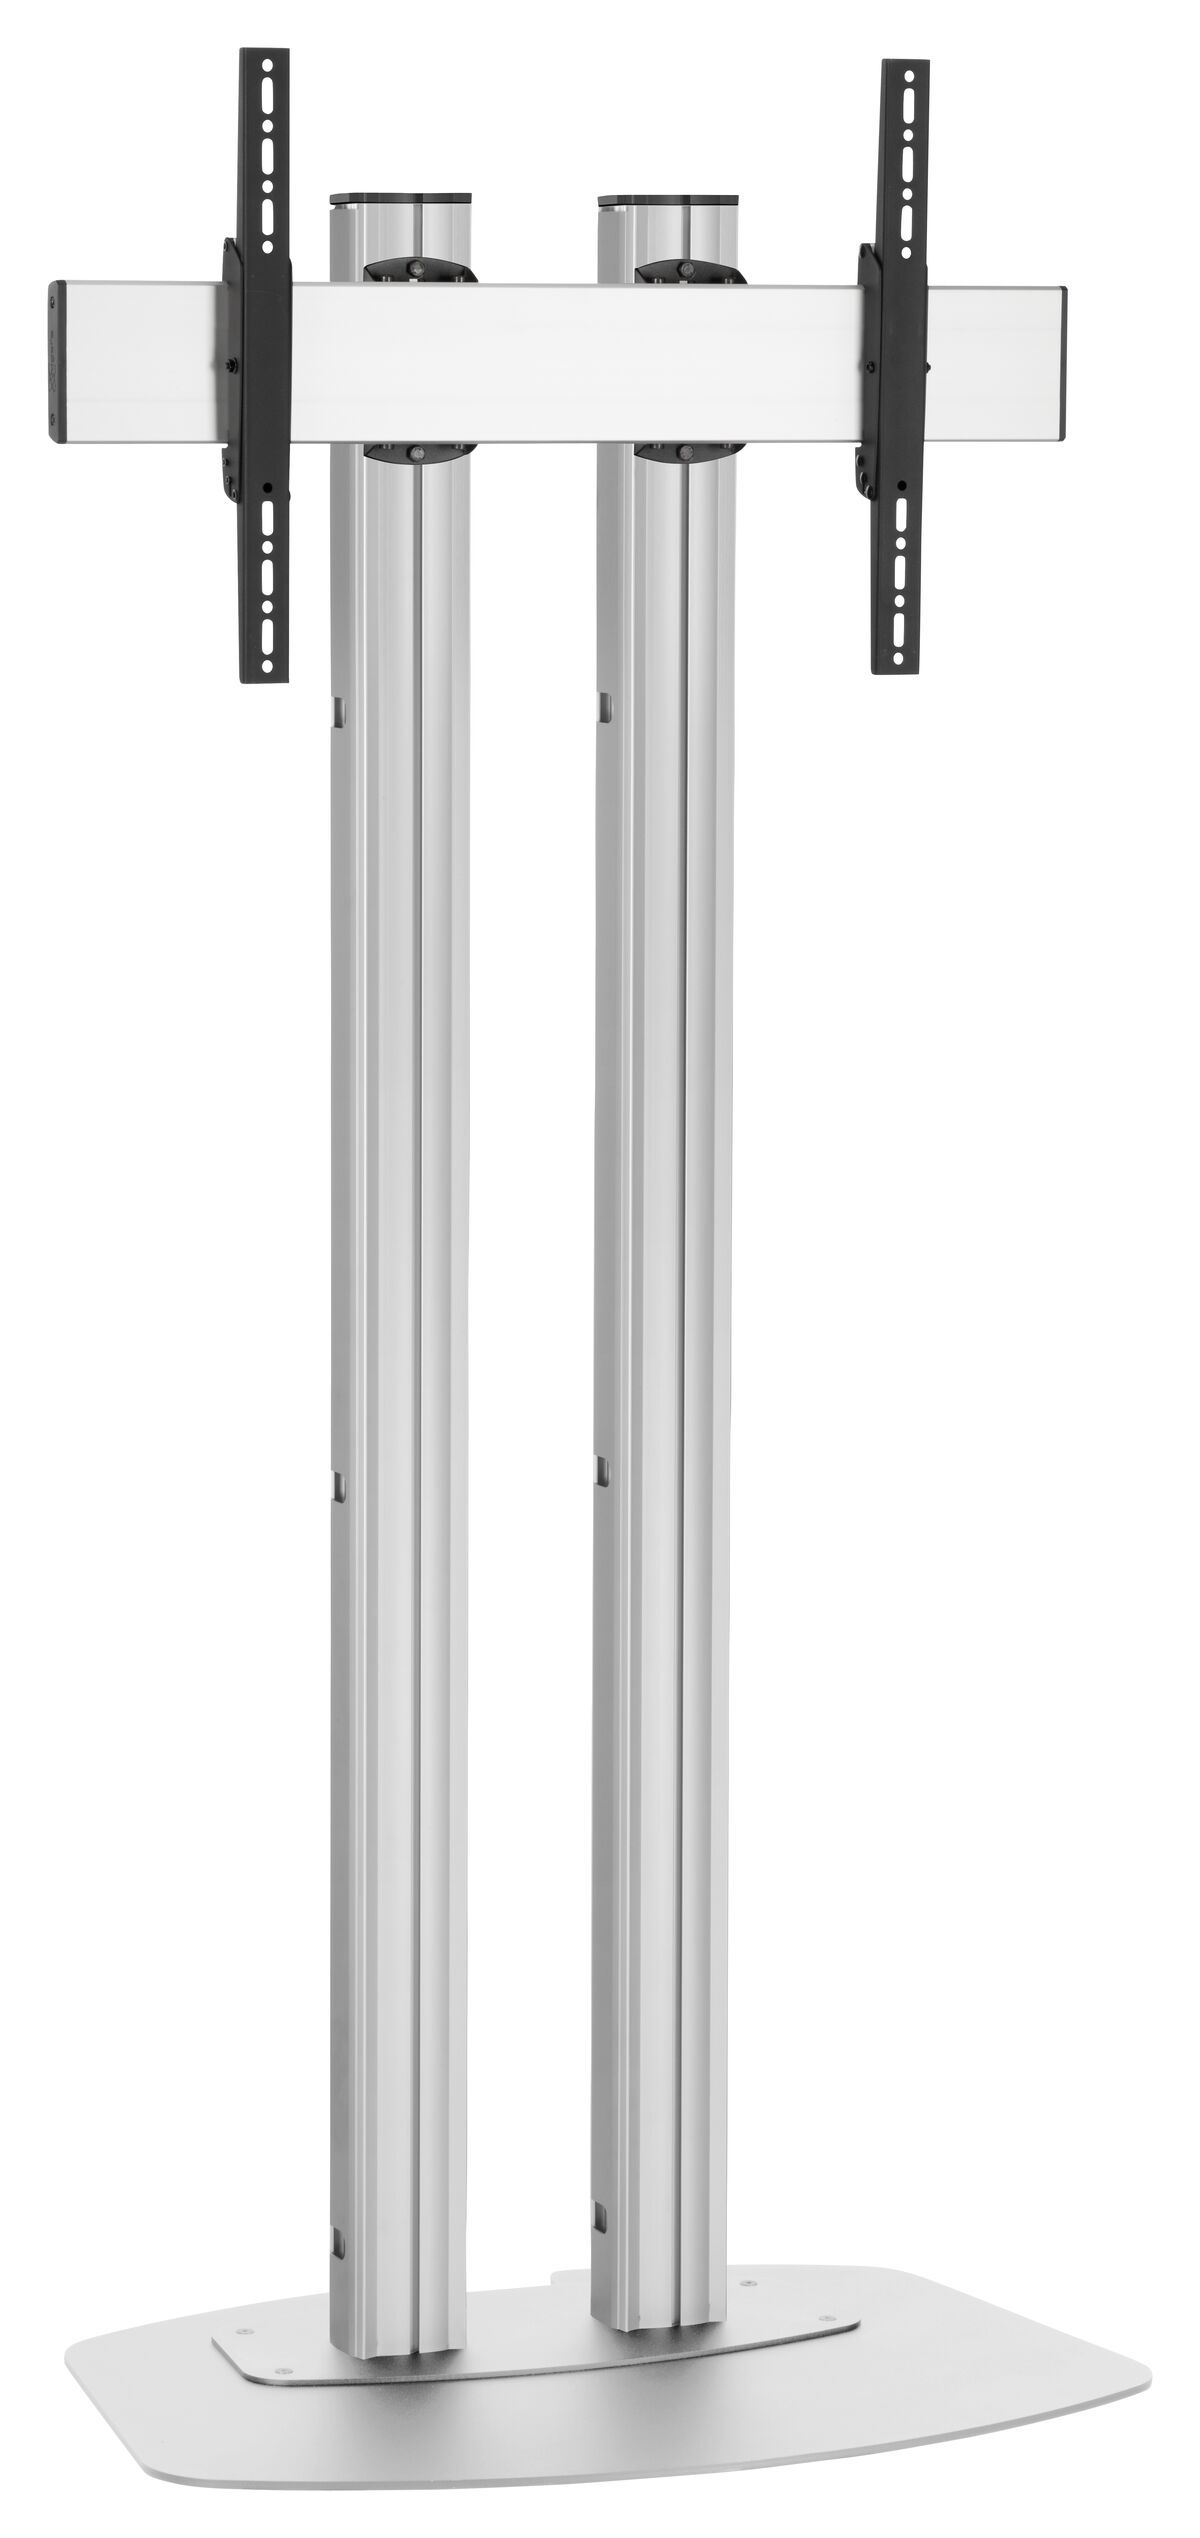 Vogel's FD2064S Floor stand - Product